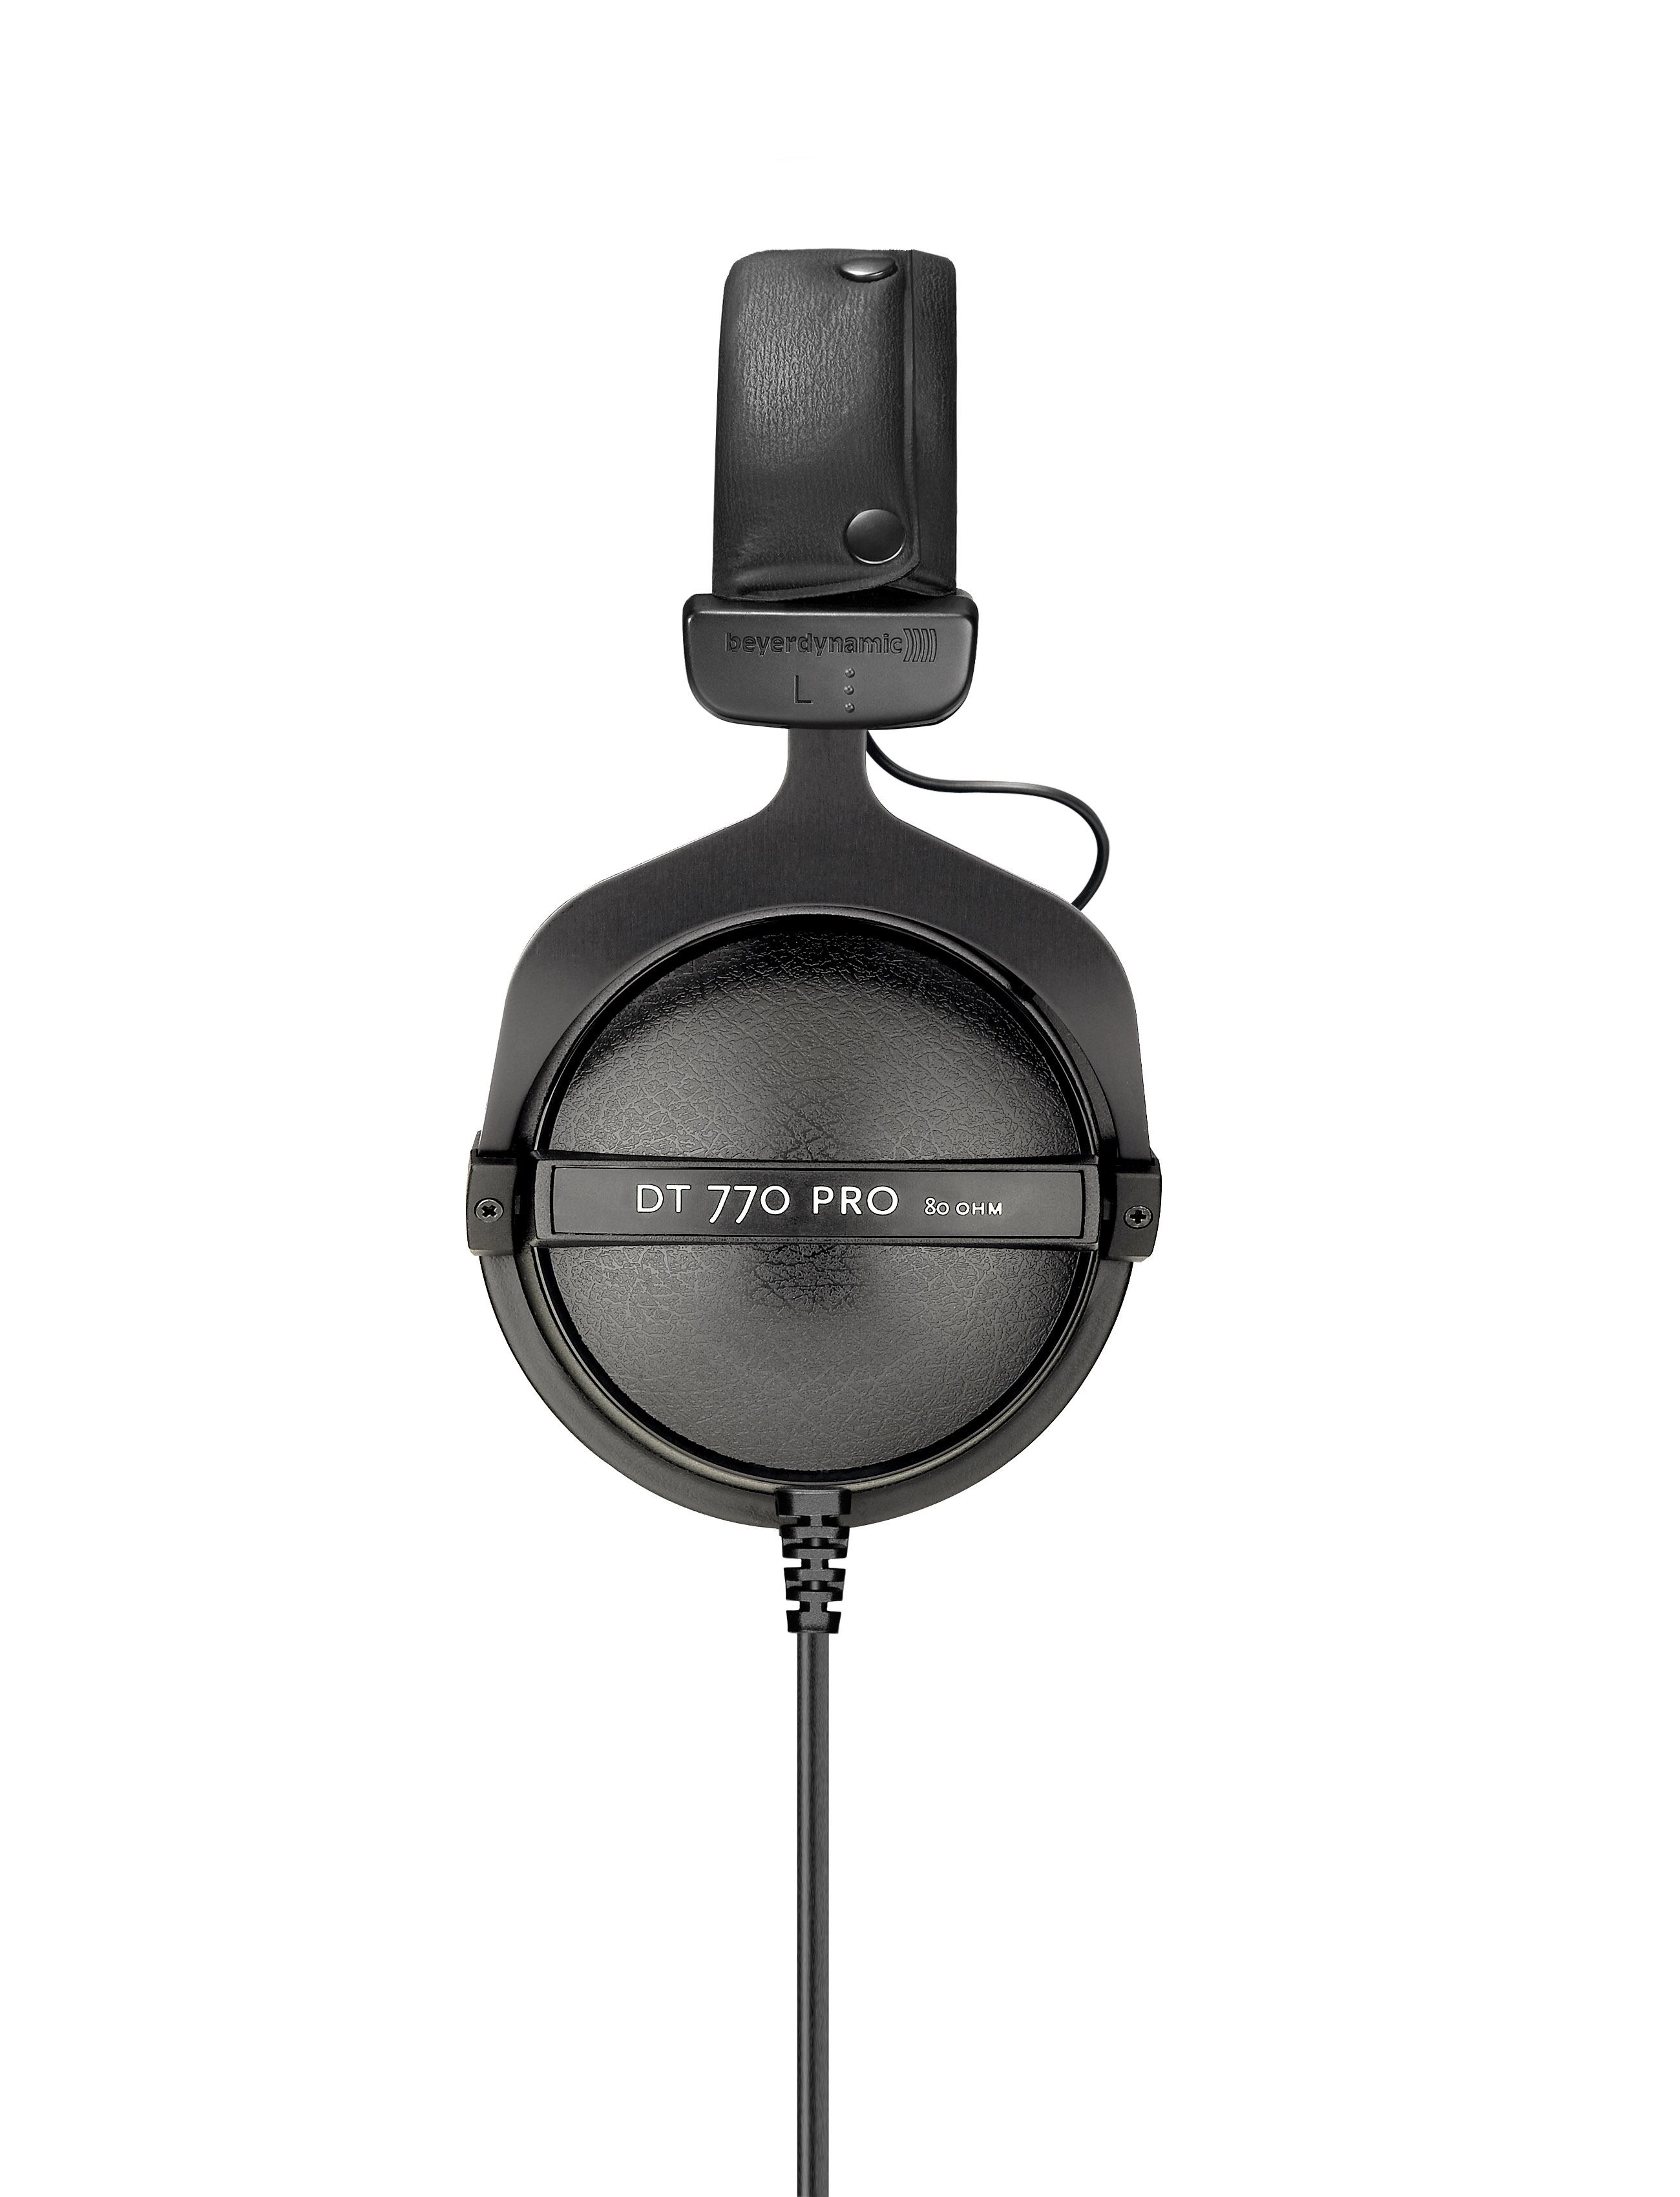 Best sound quality due to perfect spraying results - beyerdynamic Kopfhörer